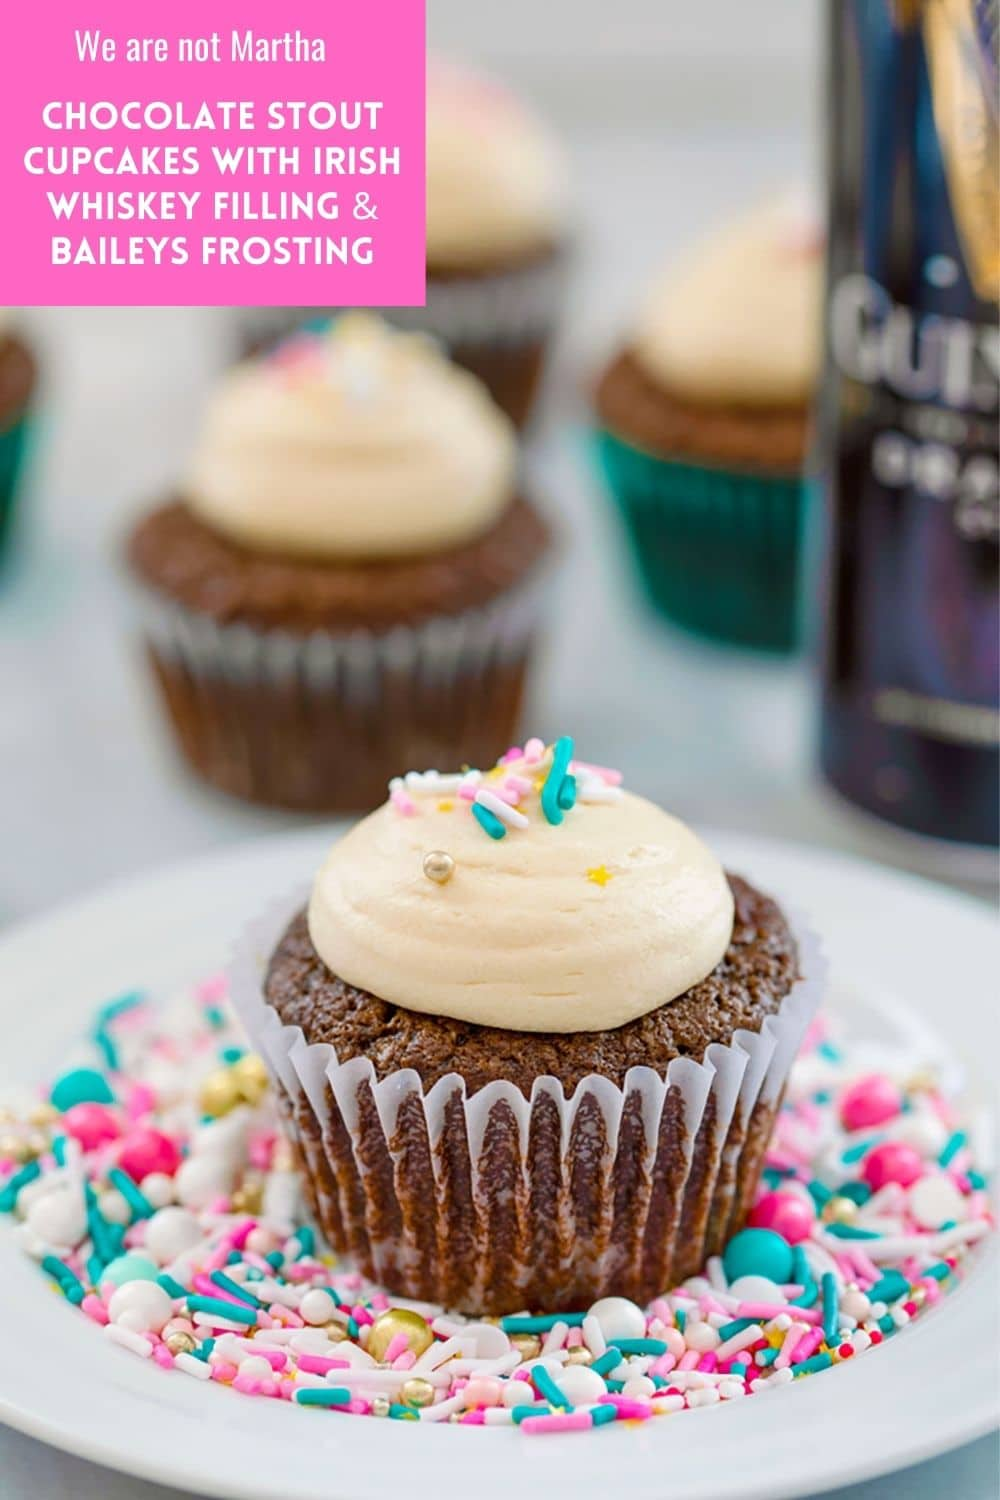 Chocolate Stout Cupcakes with Irish Whiskey Filling and Baileys Frosting